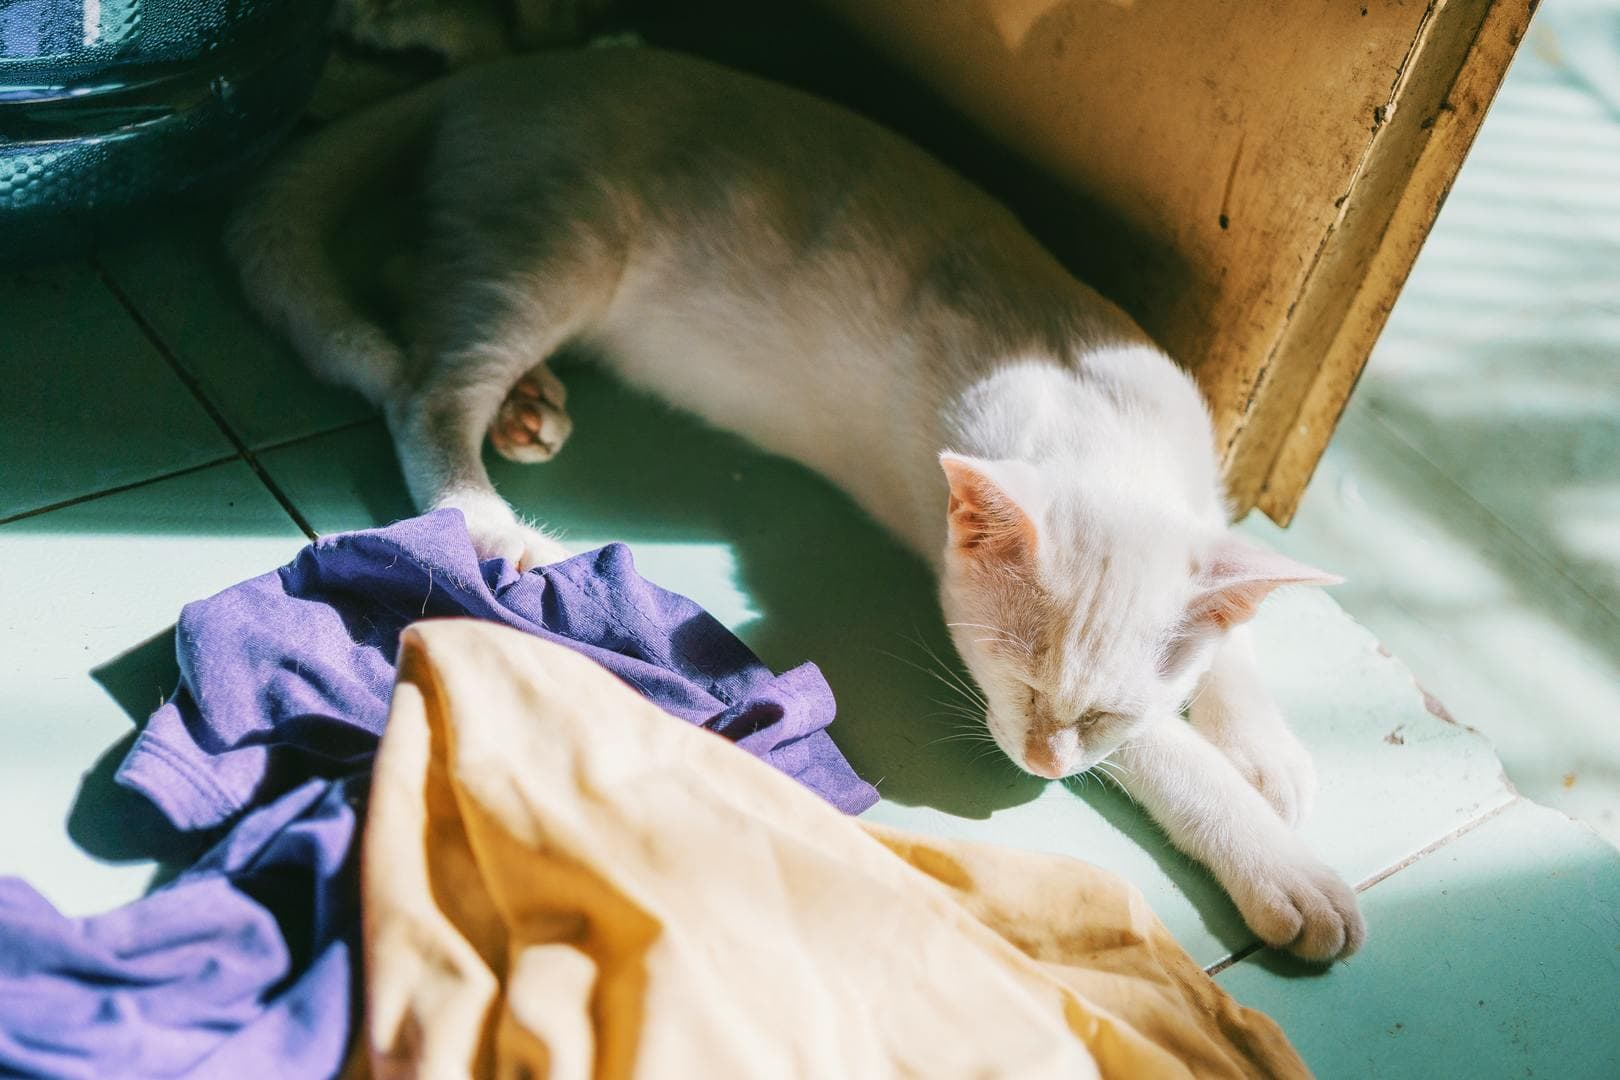 cat on the floor with clothes